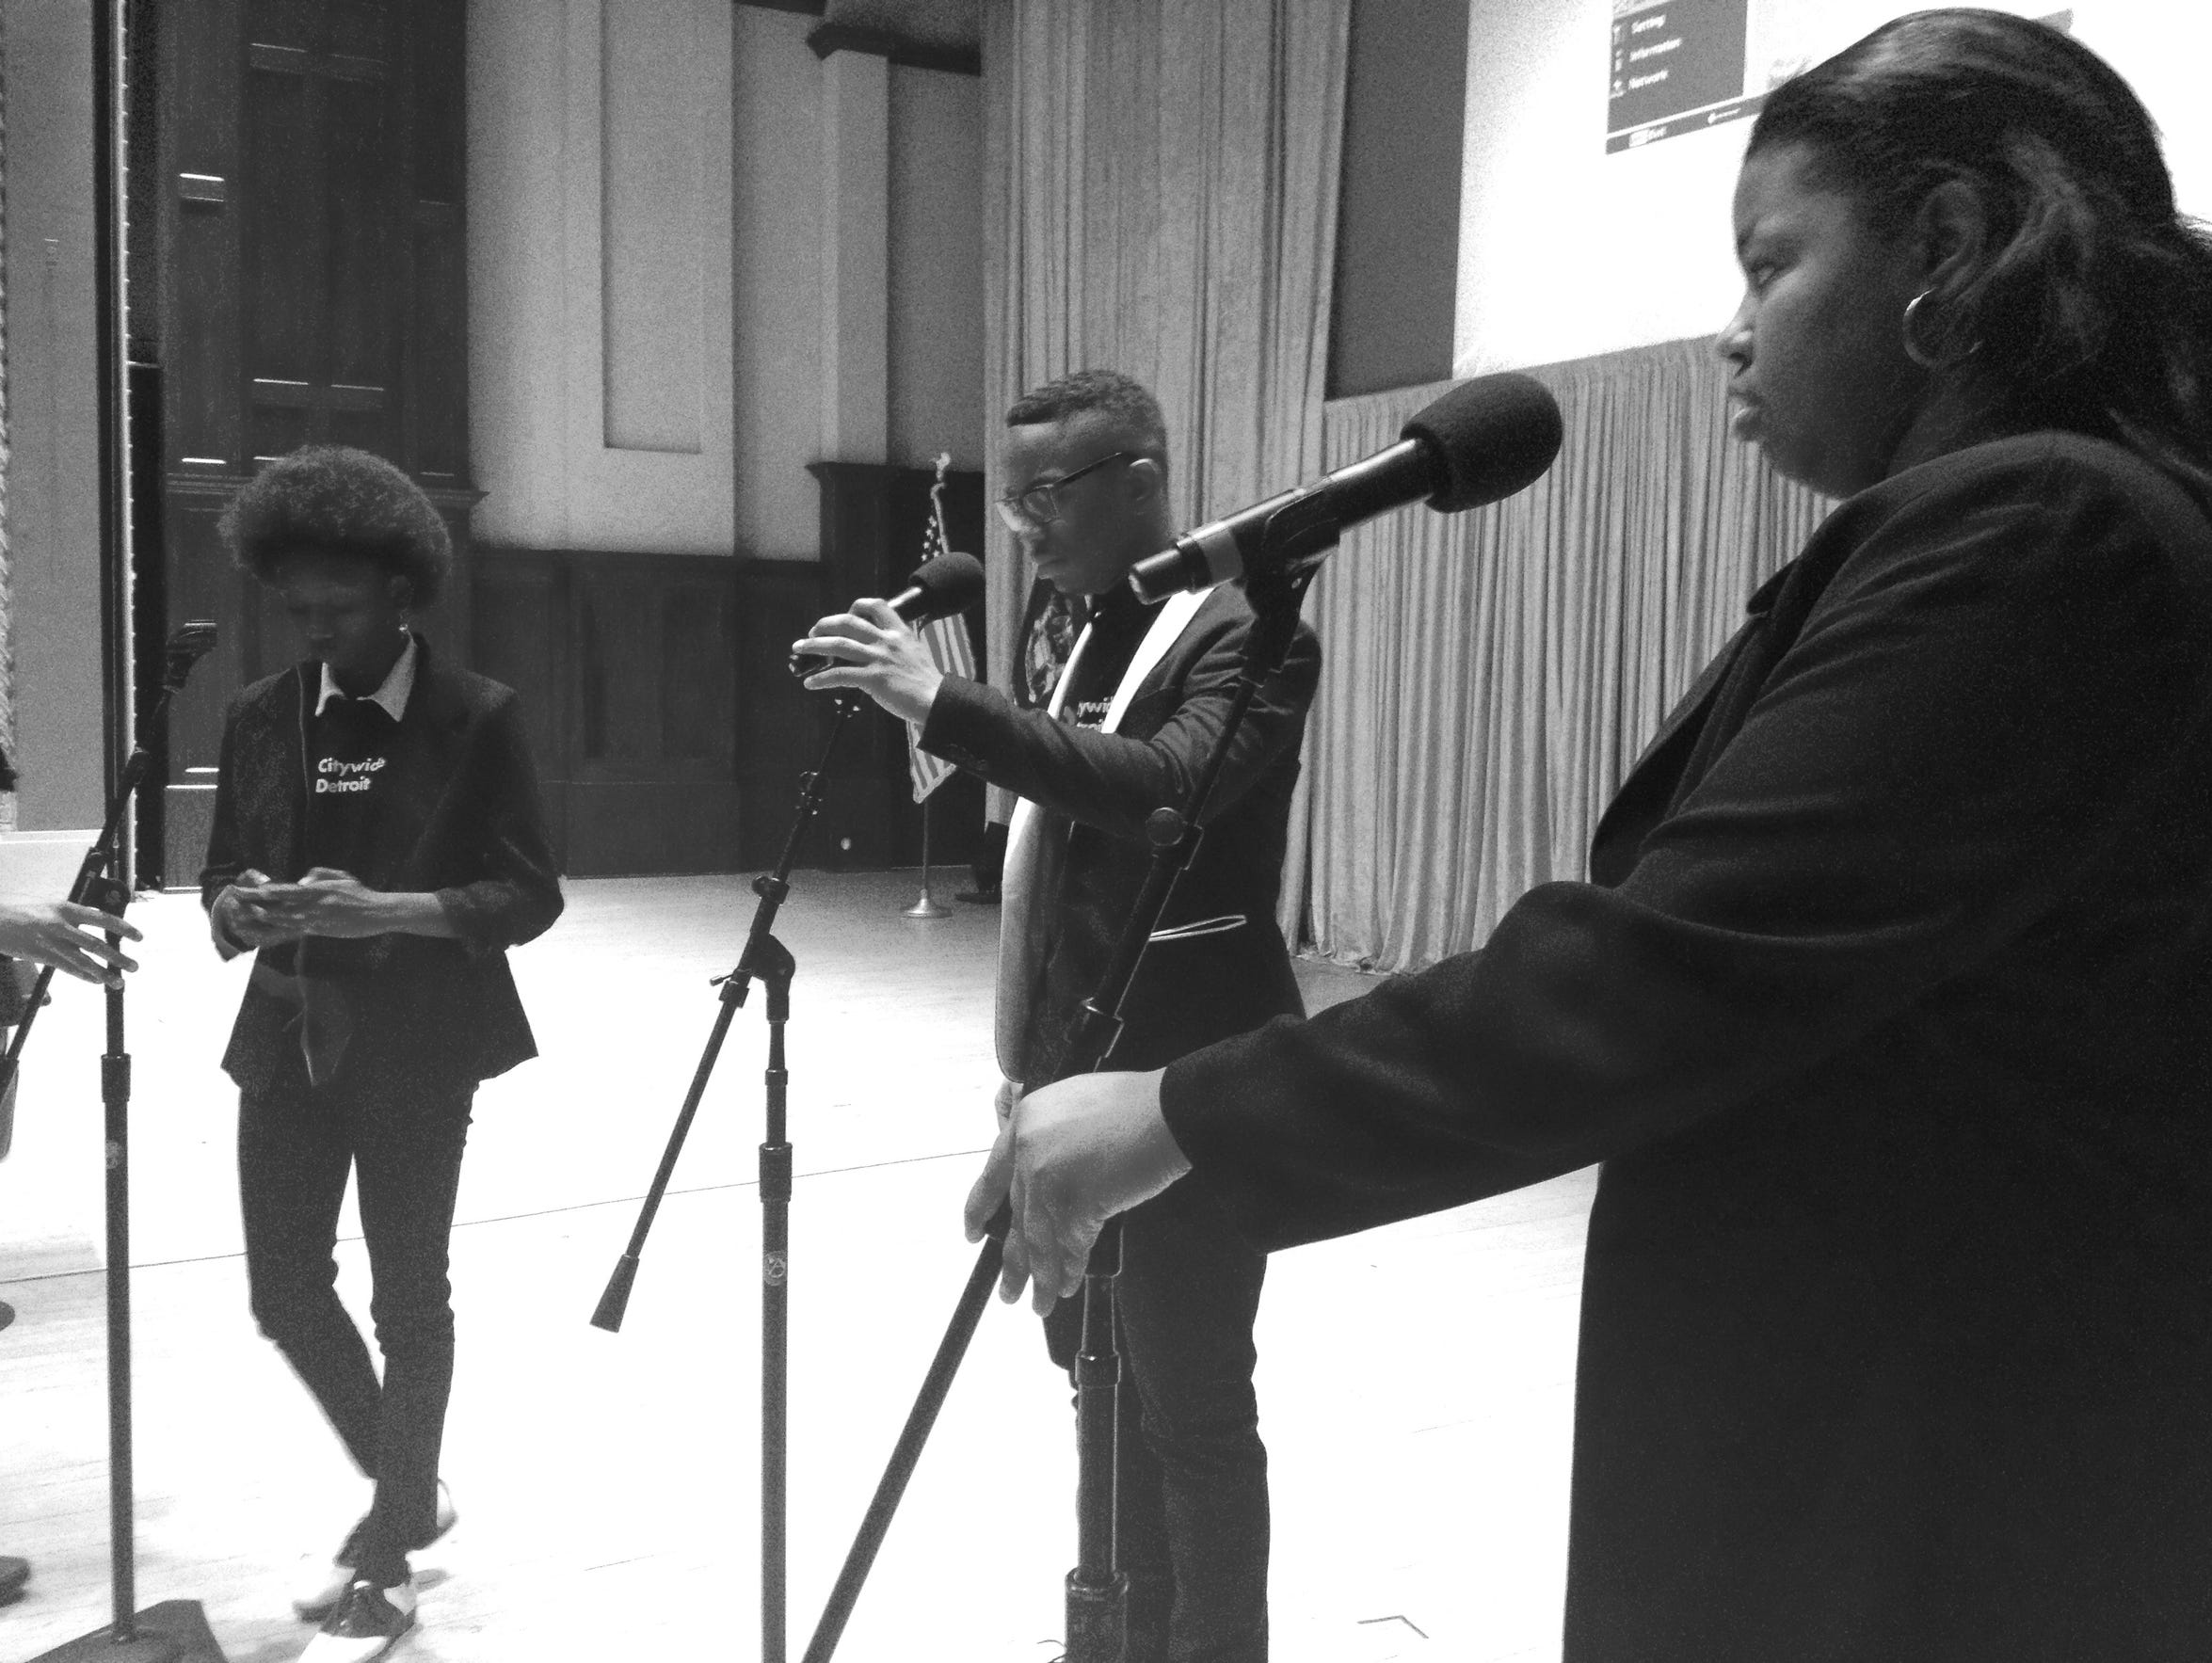 Citywide Poet's Arzelia Williams is joined by Kennedie